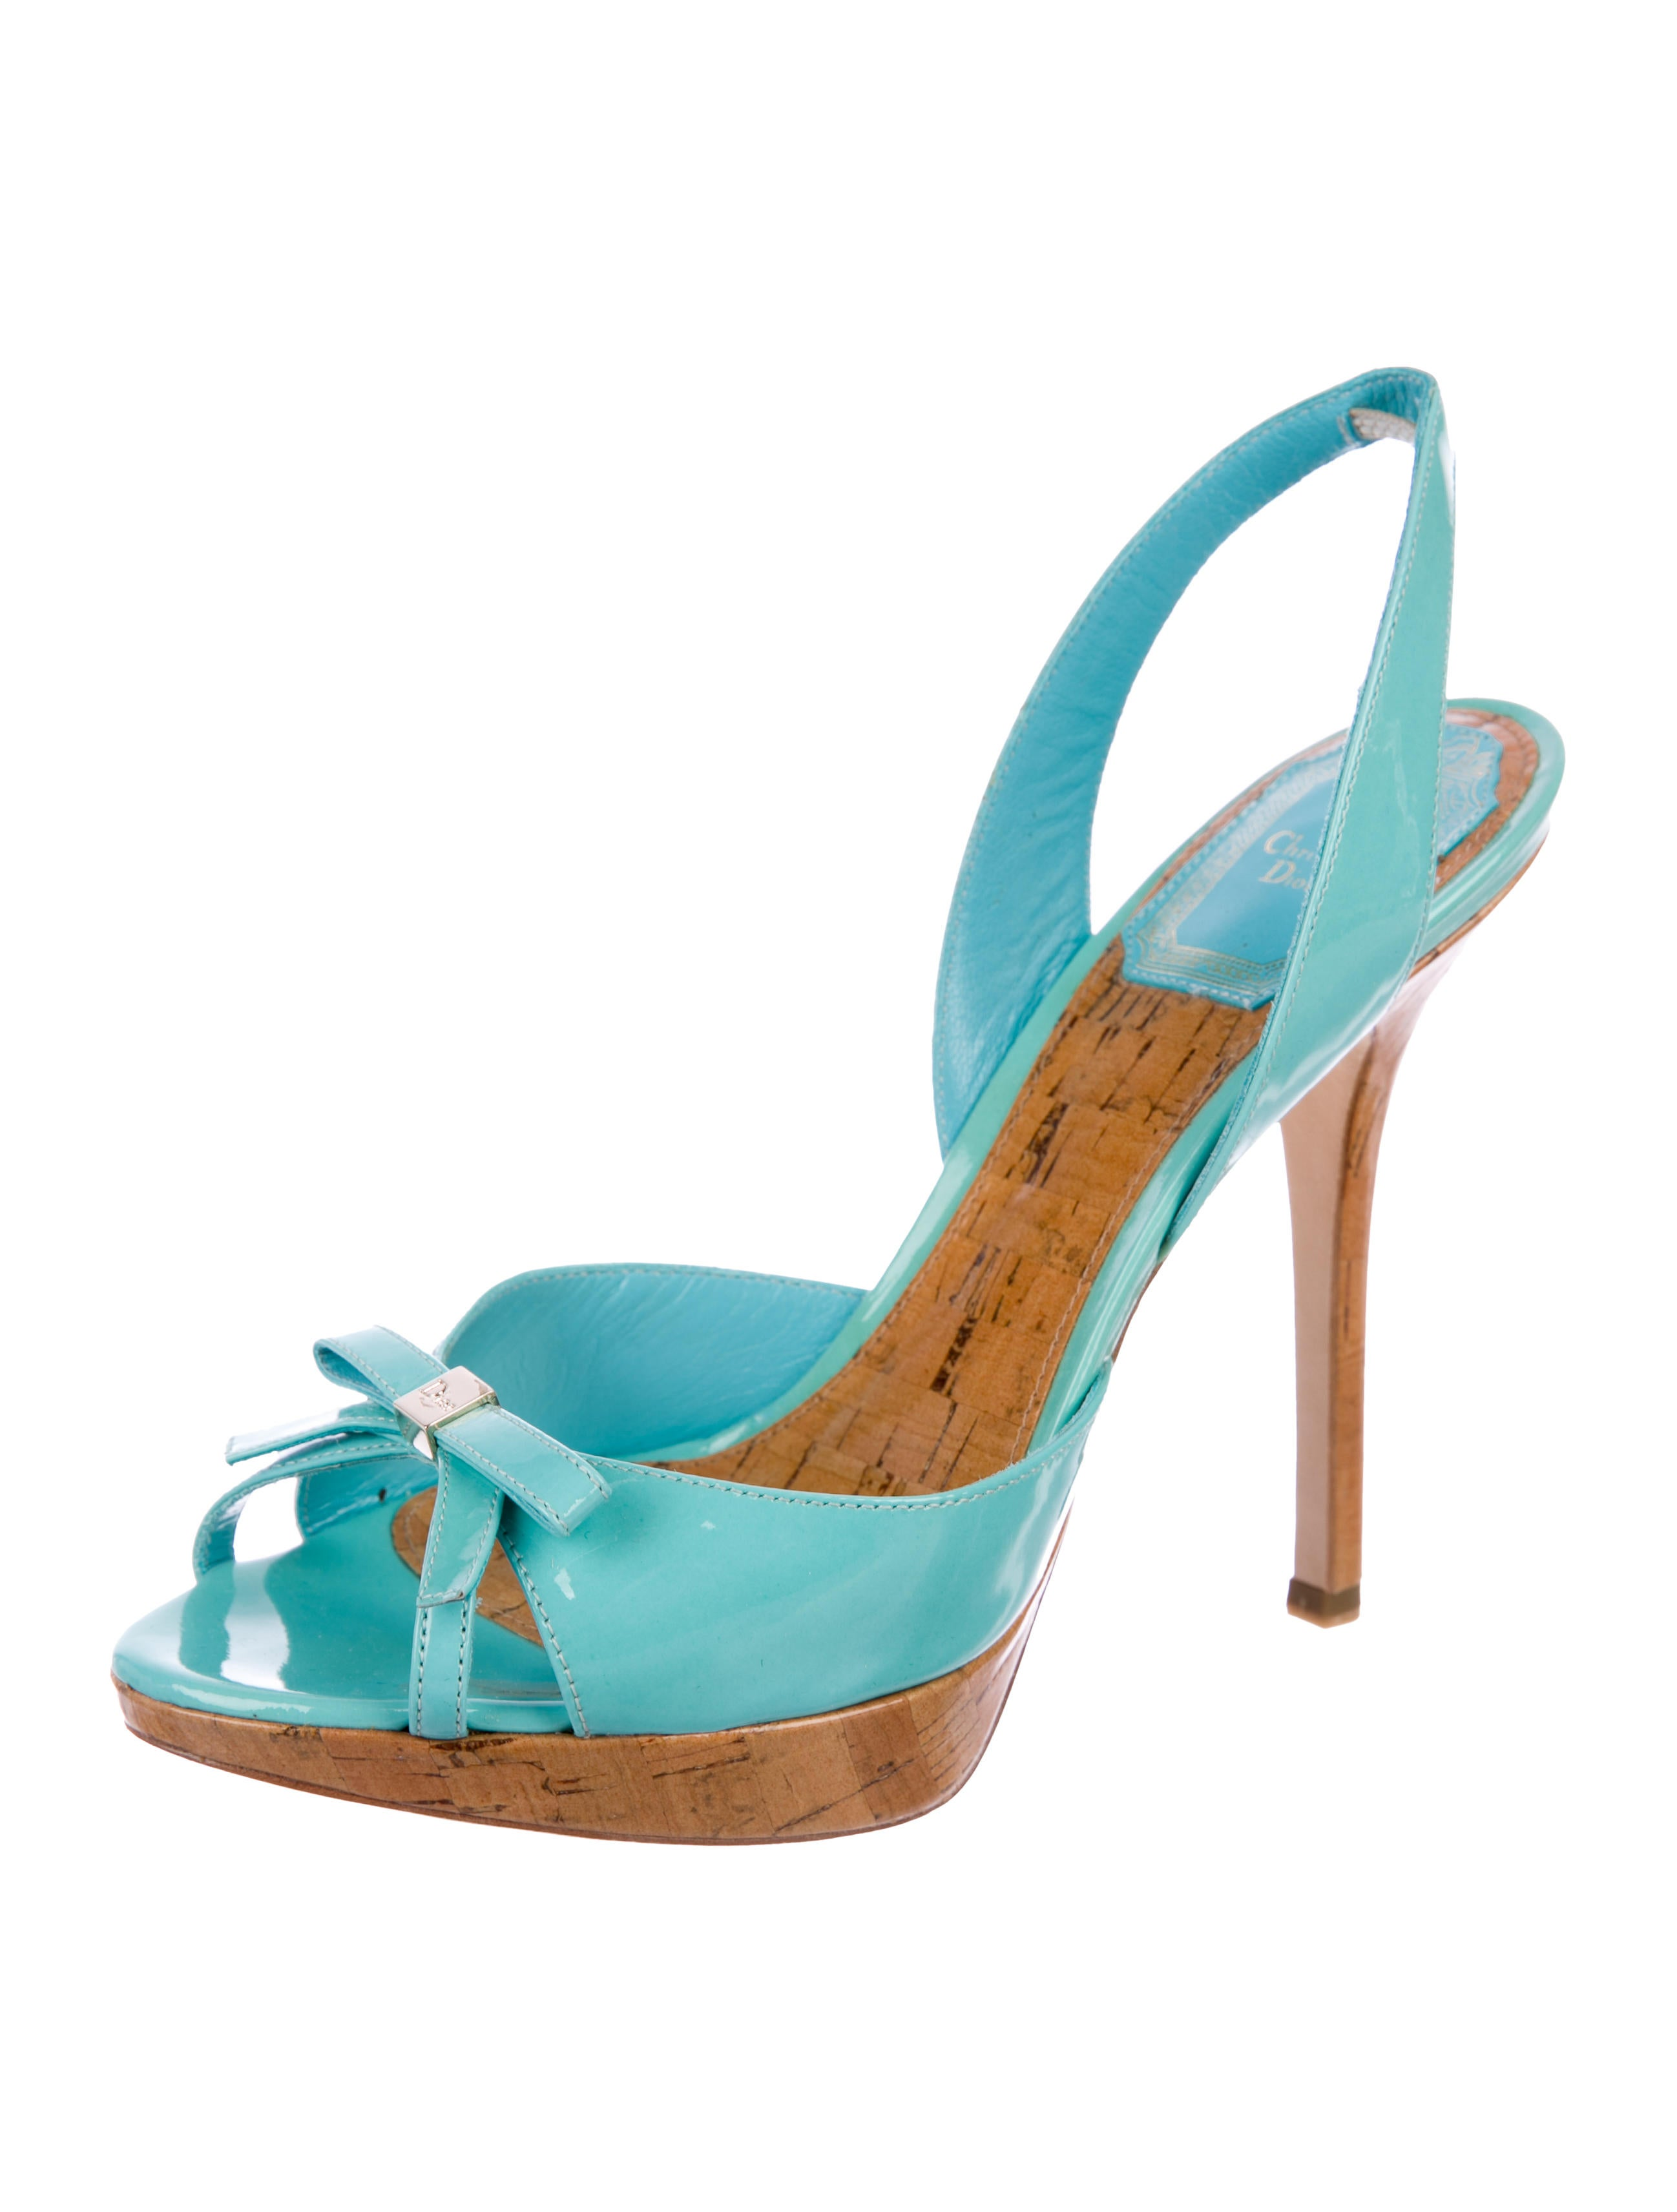 Christian Dior Starlet Slingback Sandals quality original visit new cheap price clearance how much buy cheap cheapest price 0pKXZg